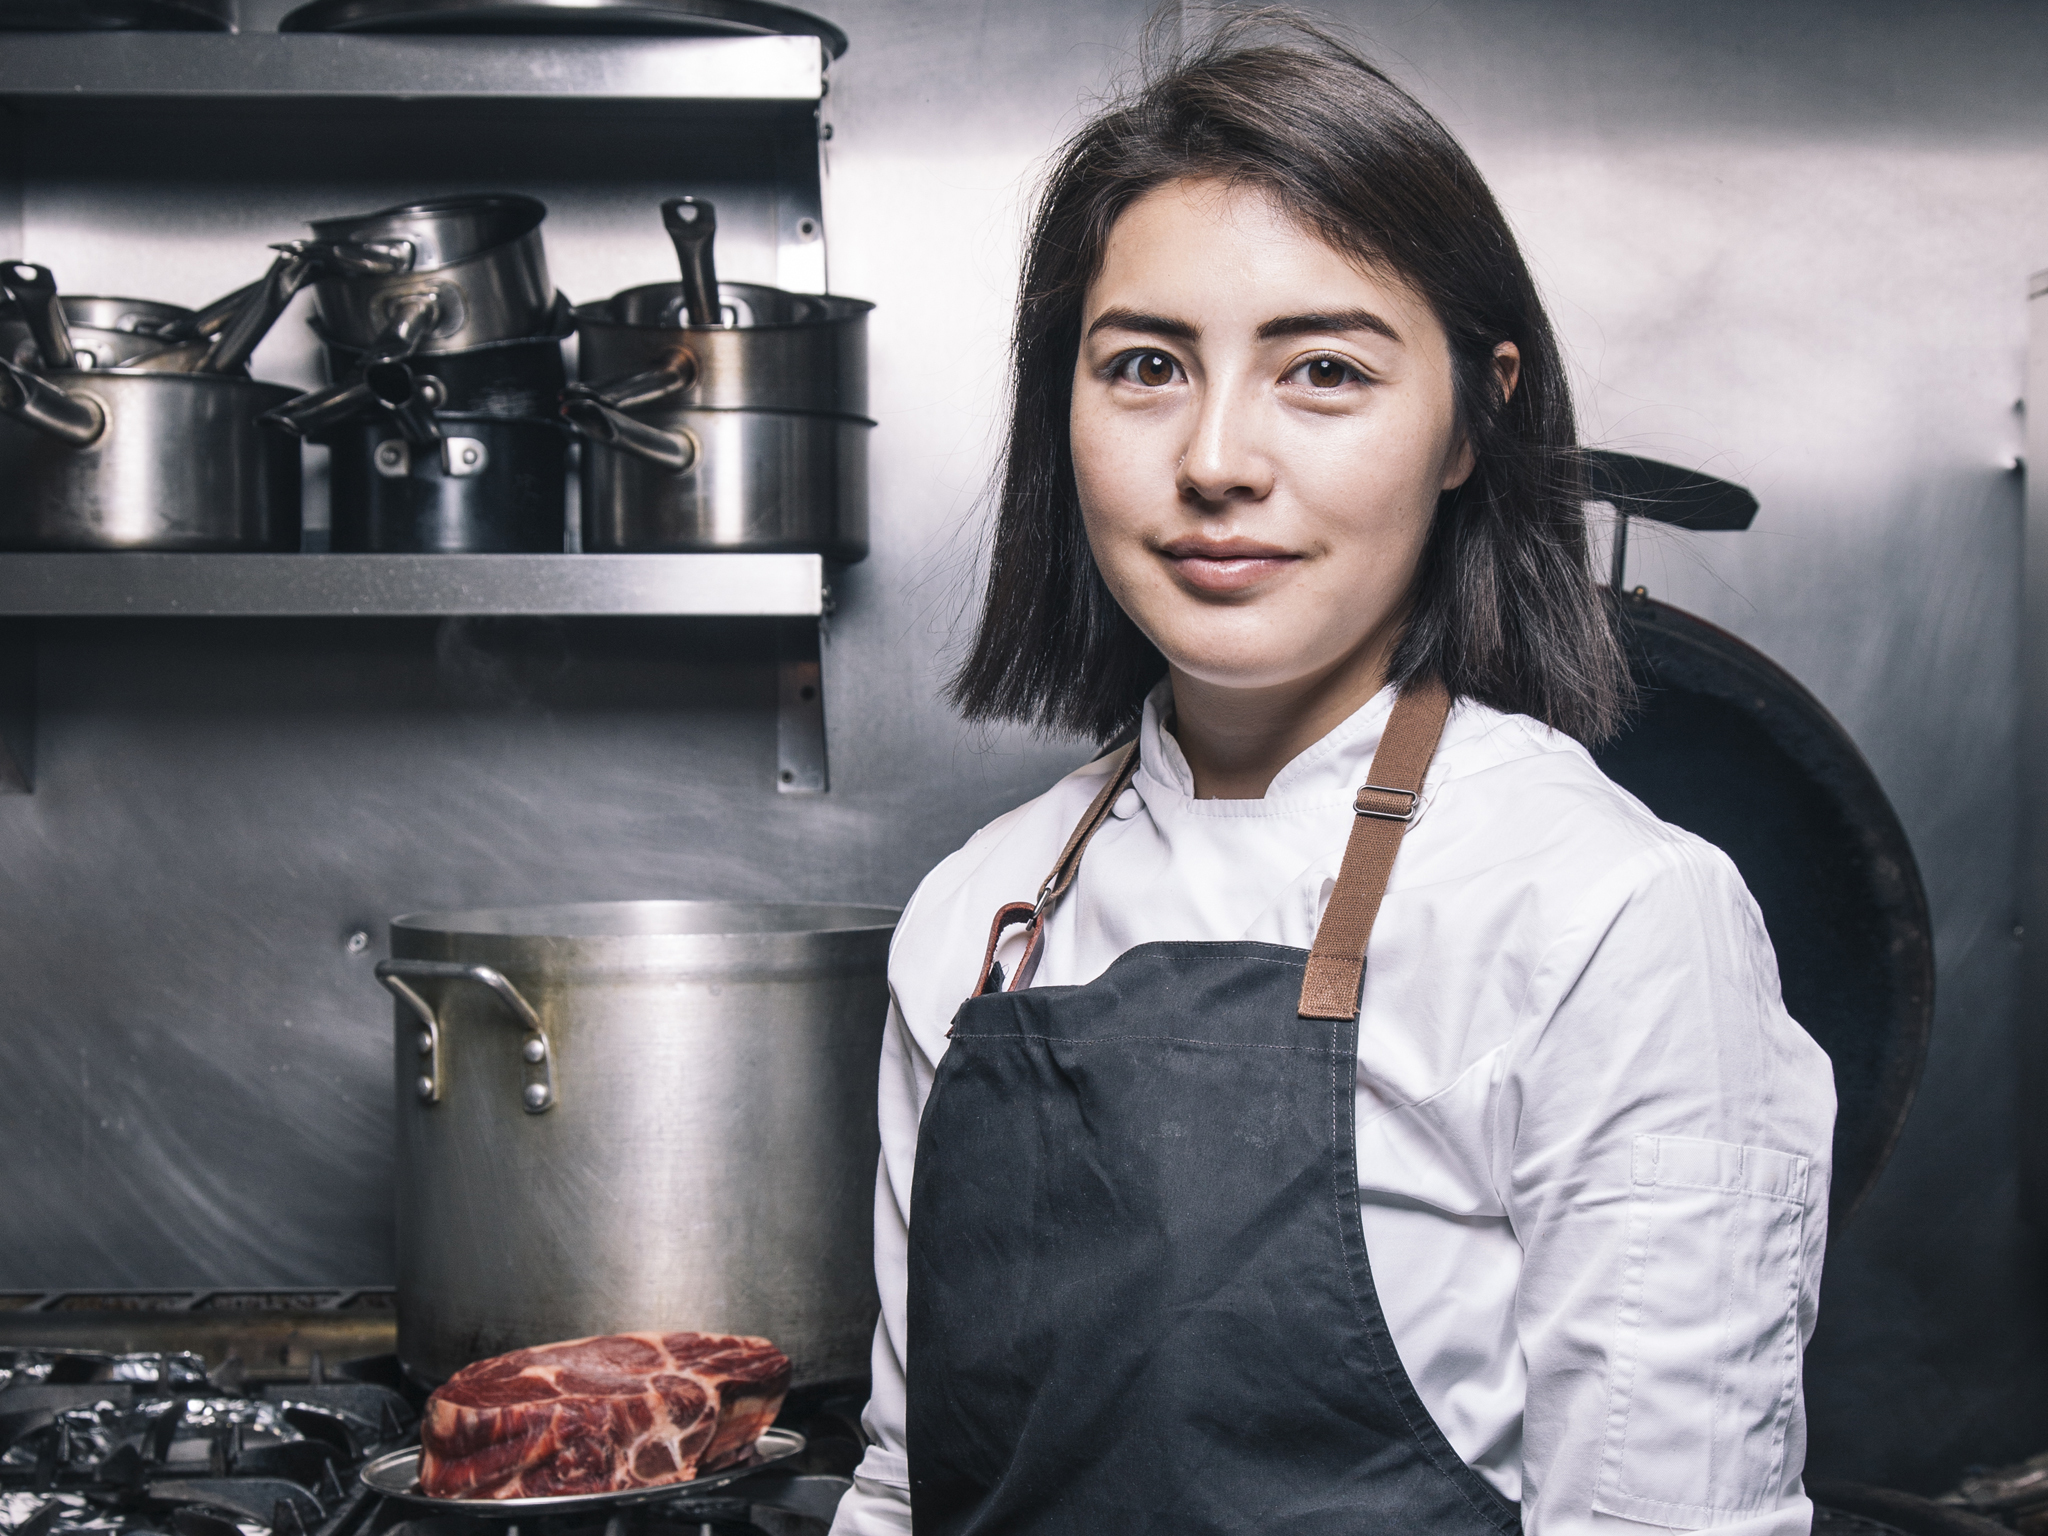 elizabeth allen, pidgin, hottest chefs in London